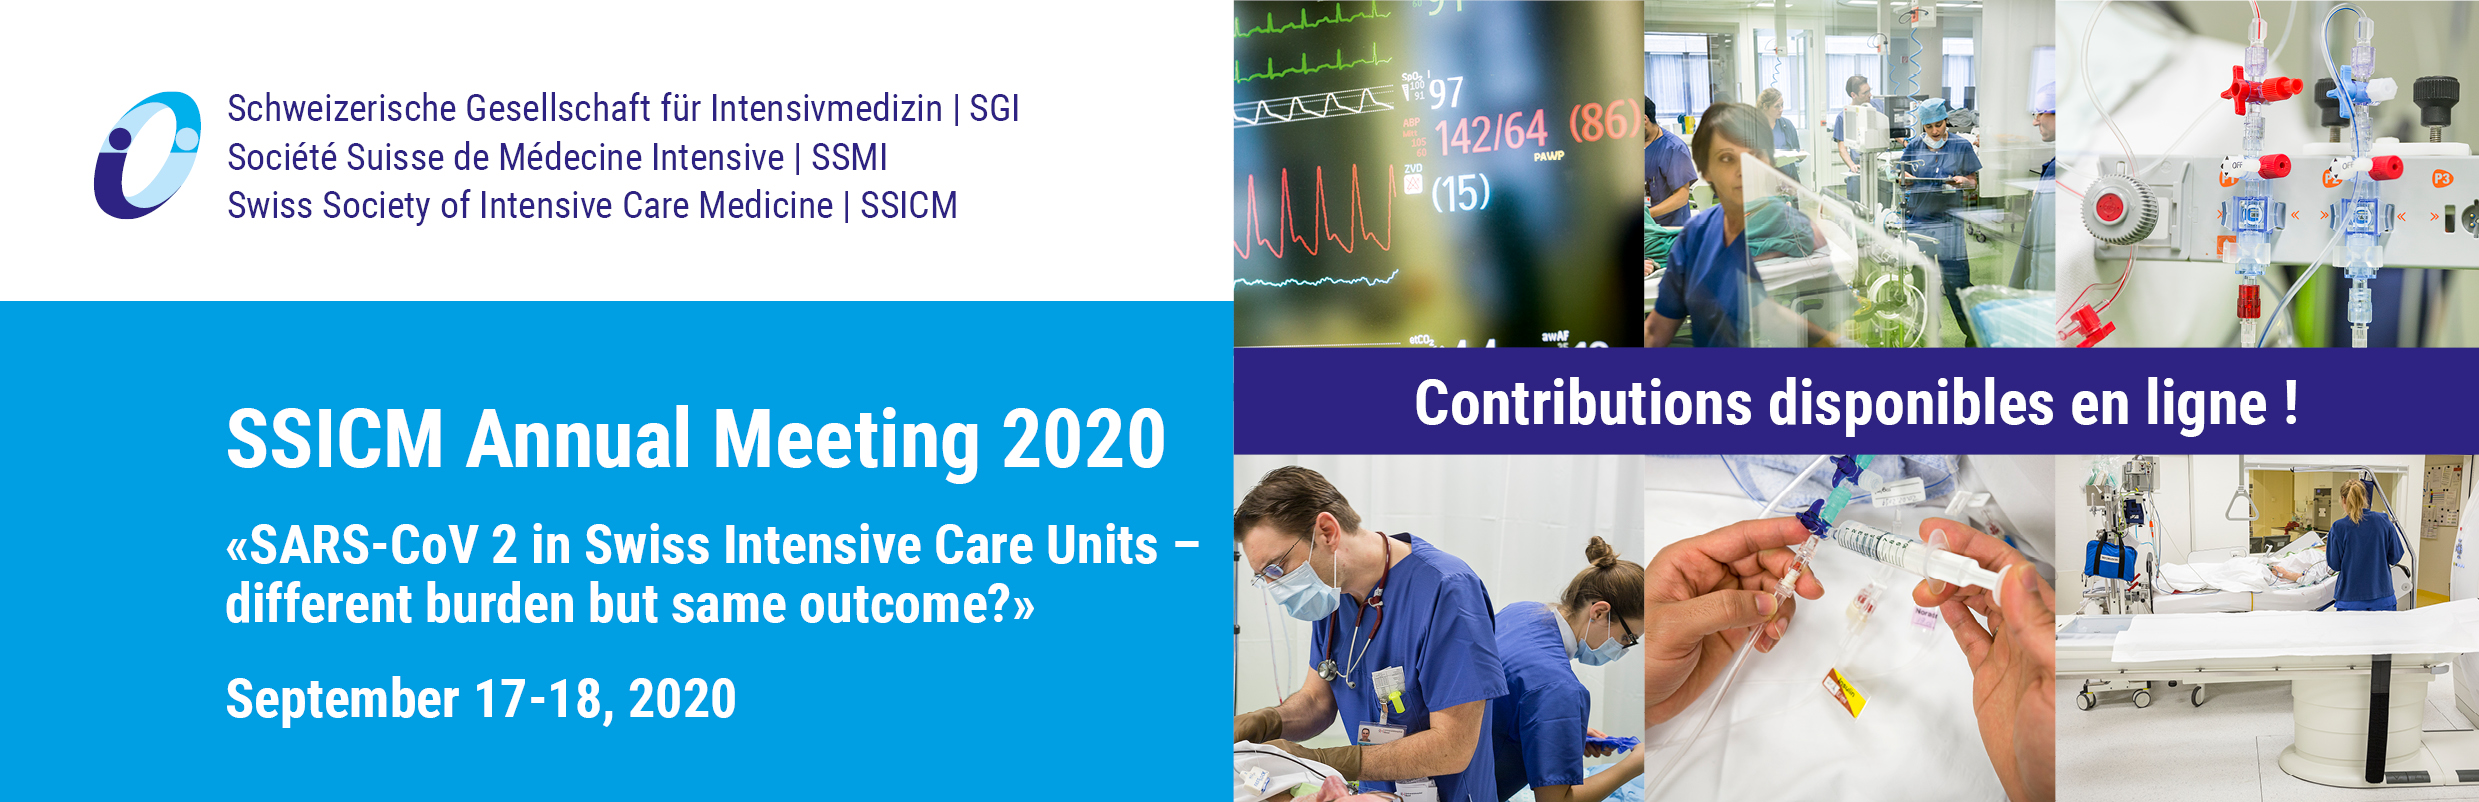 SSICM Annual Meeting 2020